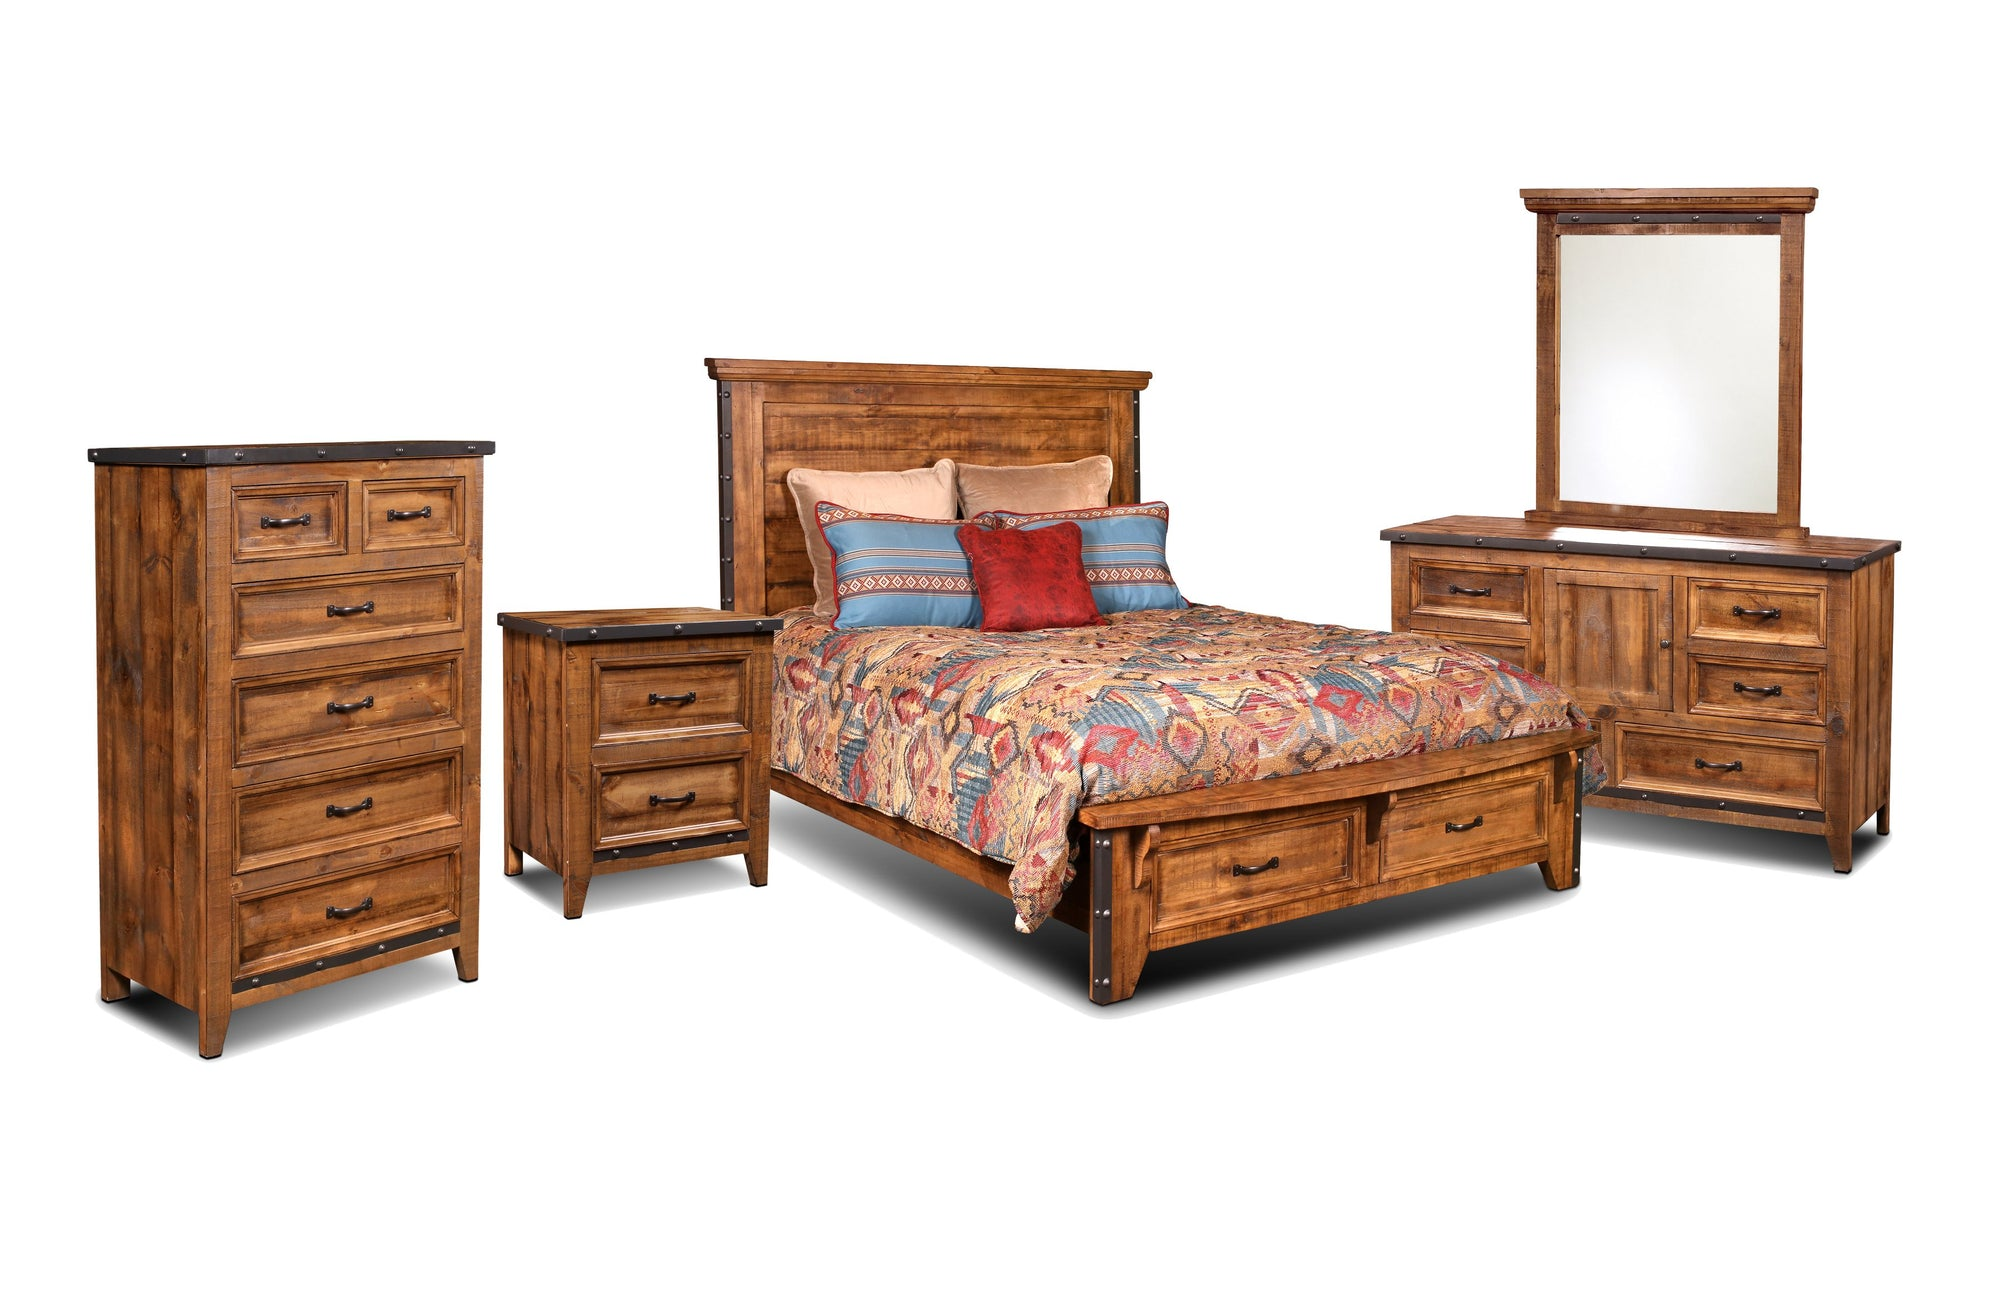 Sunset Trading Rustic City 5 Piece King Bedroom Set by Sunset Trading - HomeKingz.com - Online furniture shop with the best prices & premium customer support!